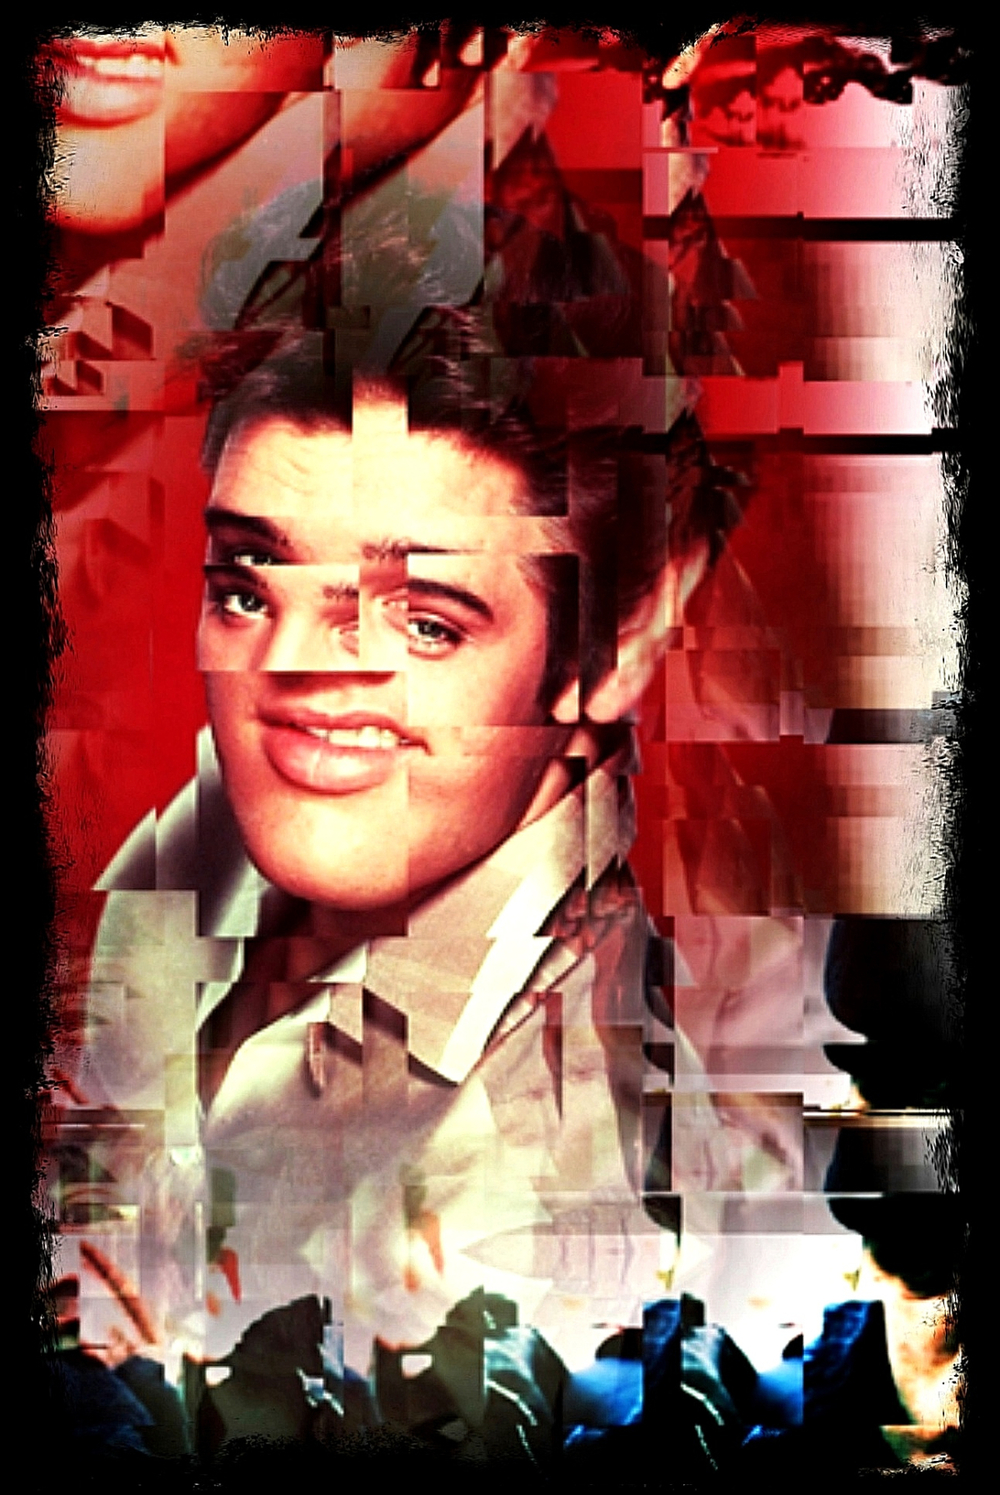 elvis-collage2-120711.jpg